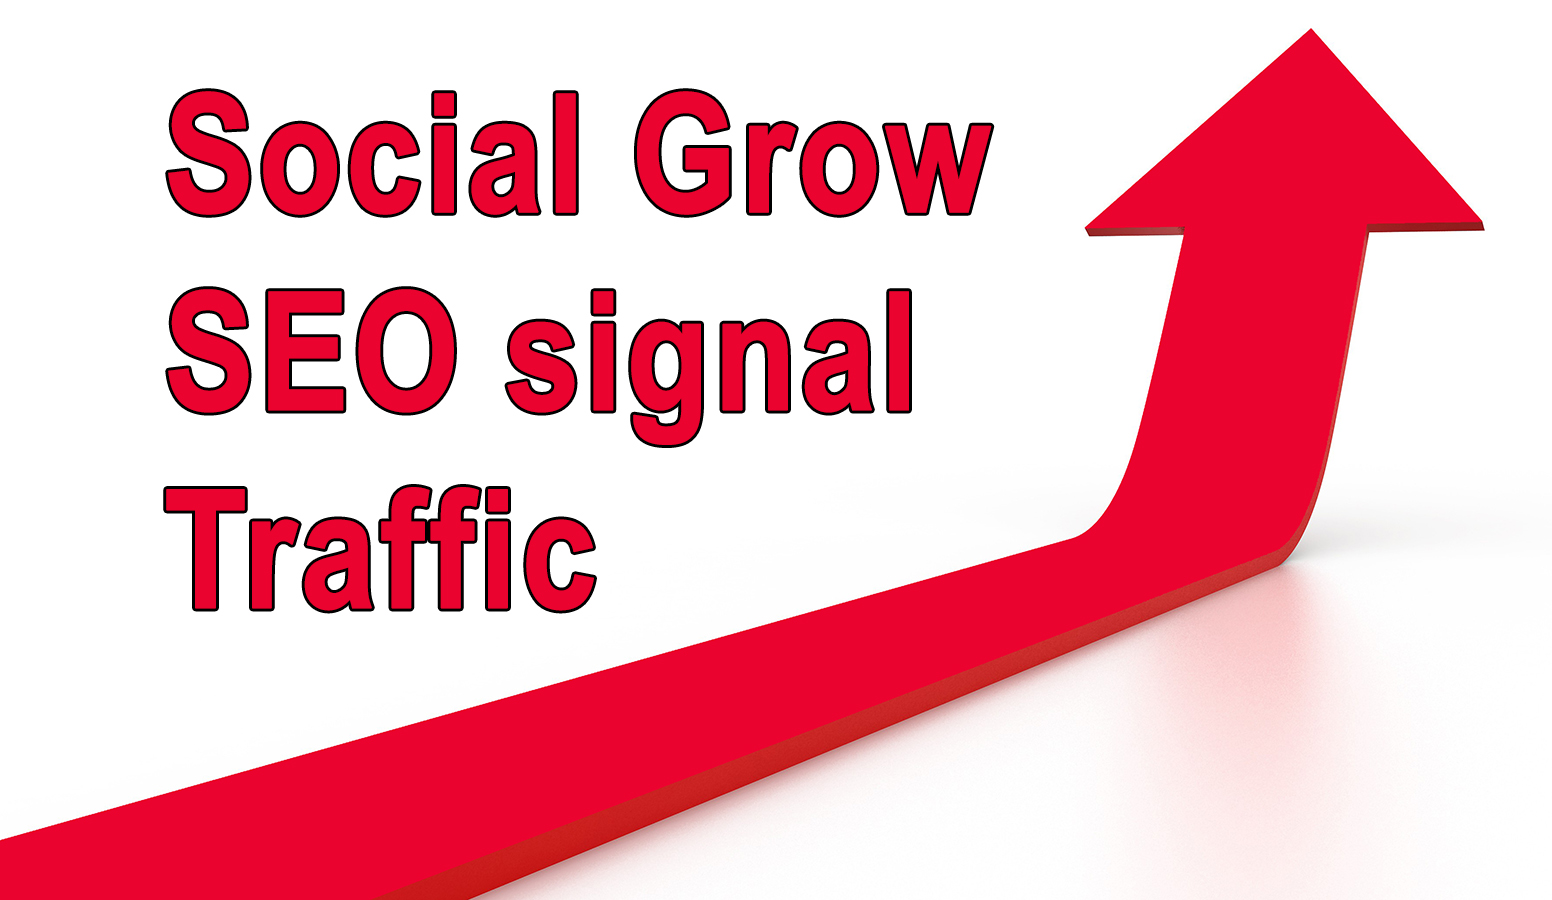 seo traffic work for you social or website to grow people